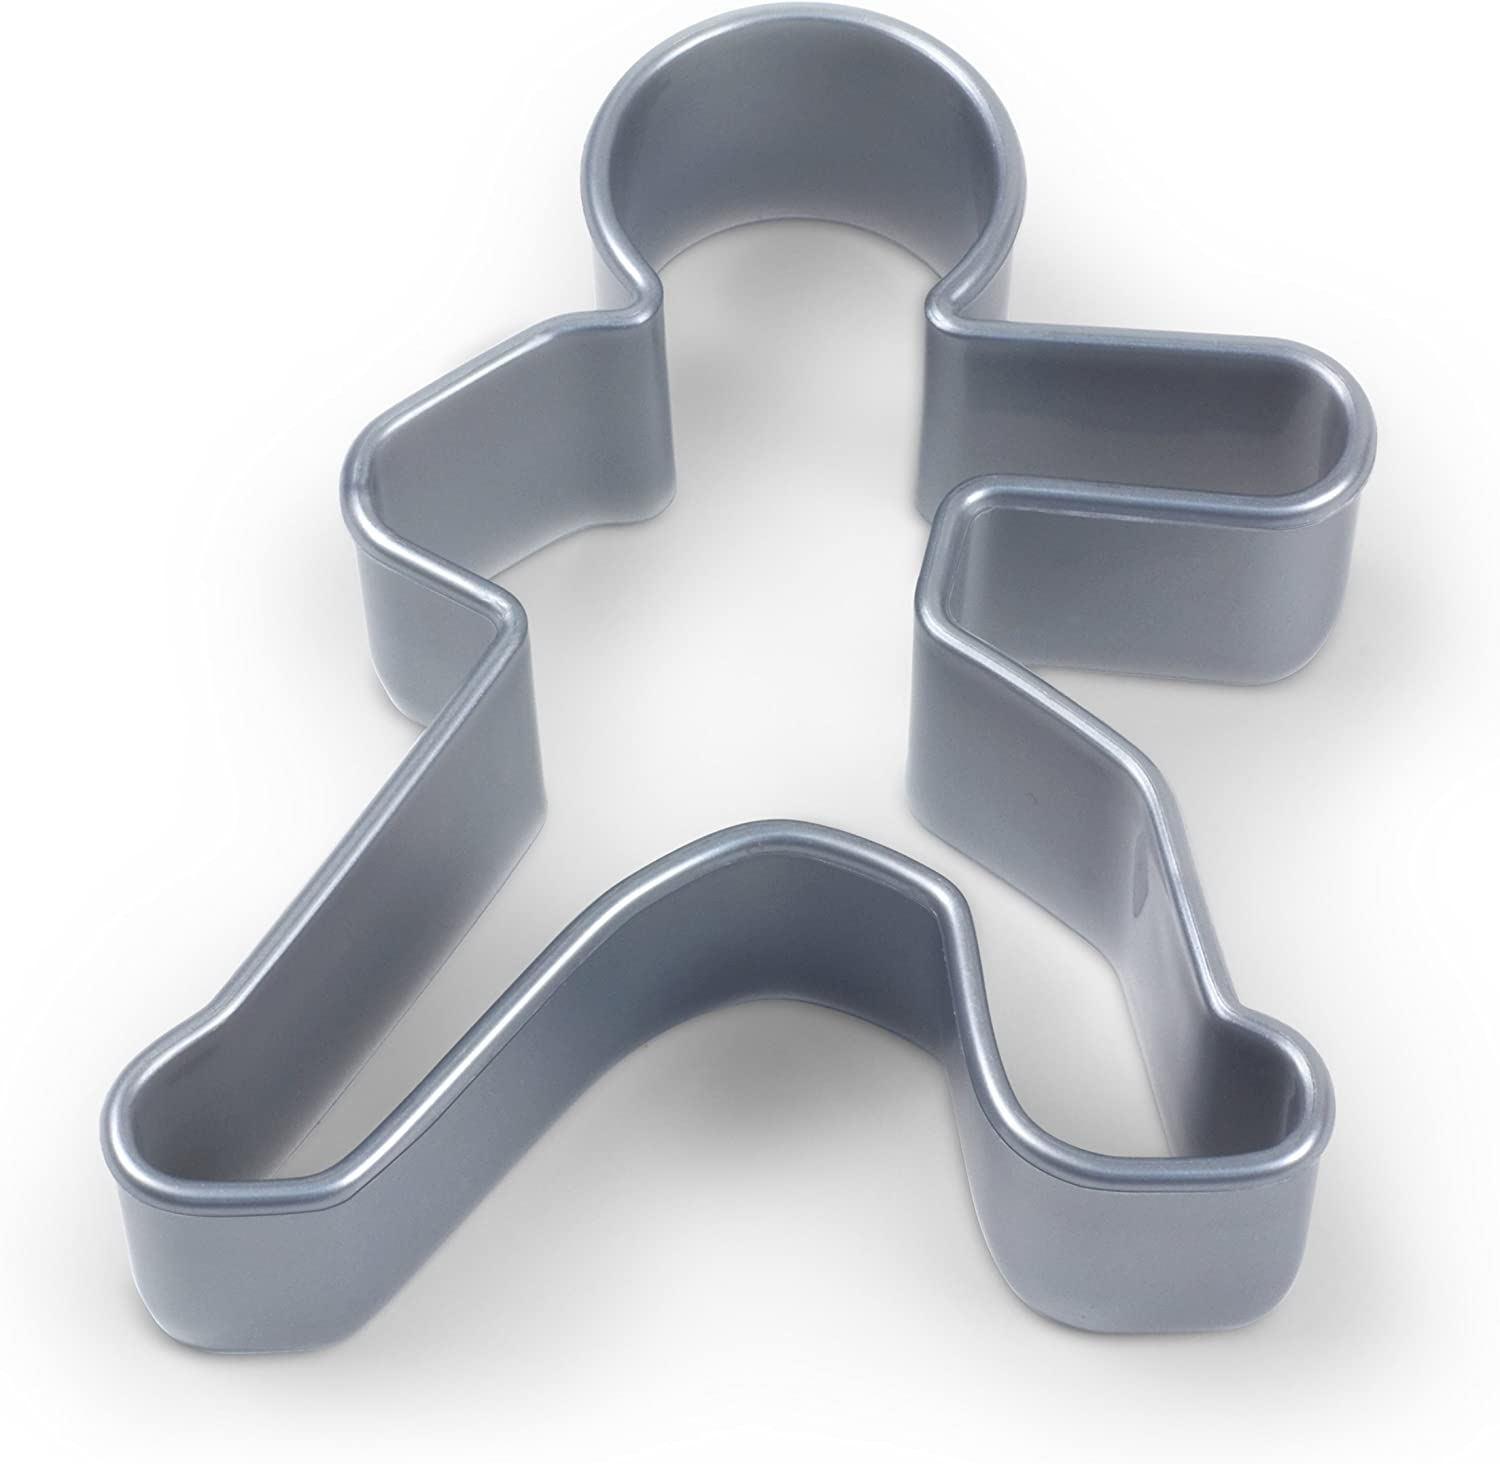 Fred NINJABREAD MEN Cookie Cutters, Set of 3